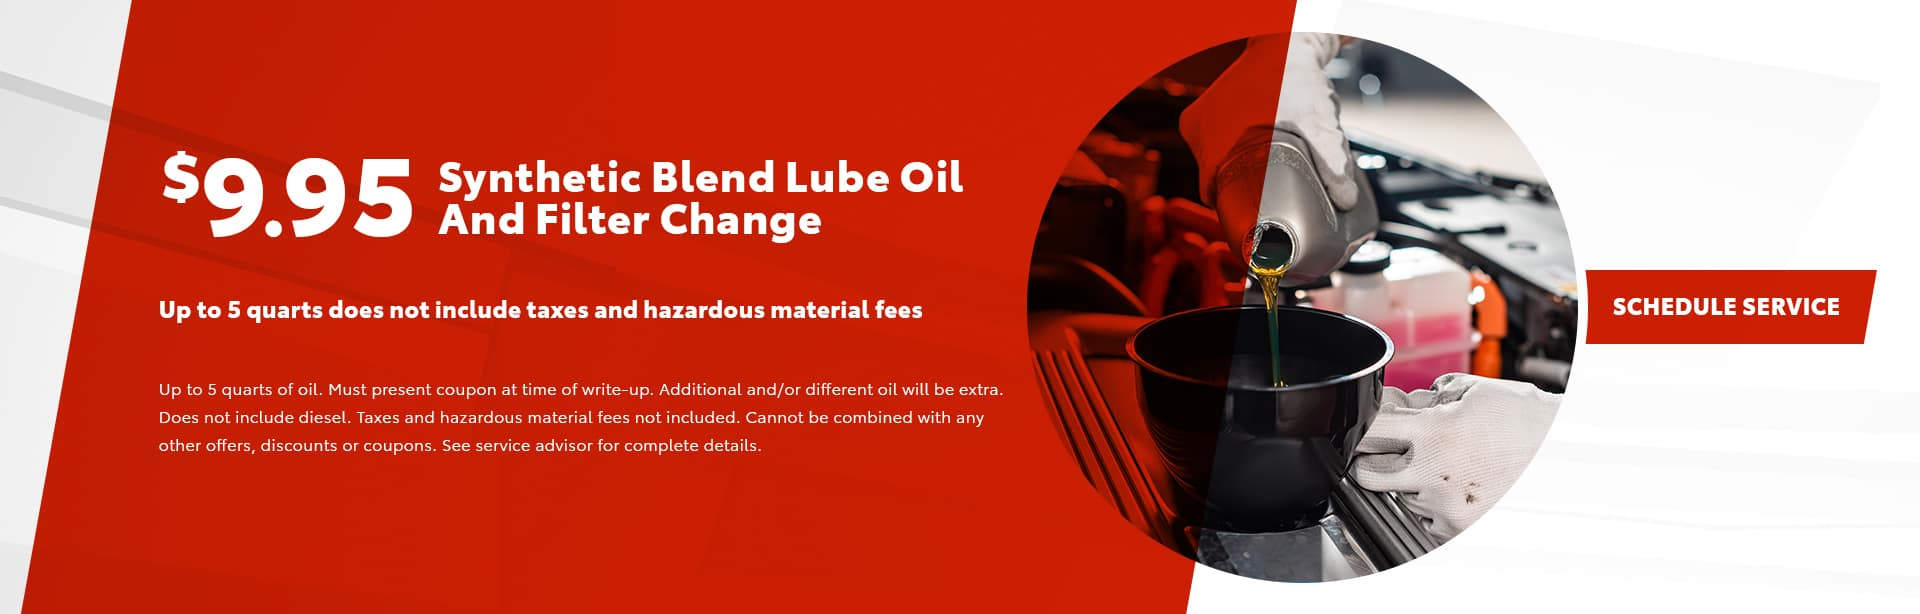 $9.95 Synthetic Blend Lube Oil & Filter Change